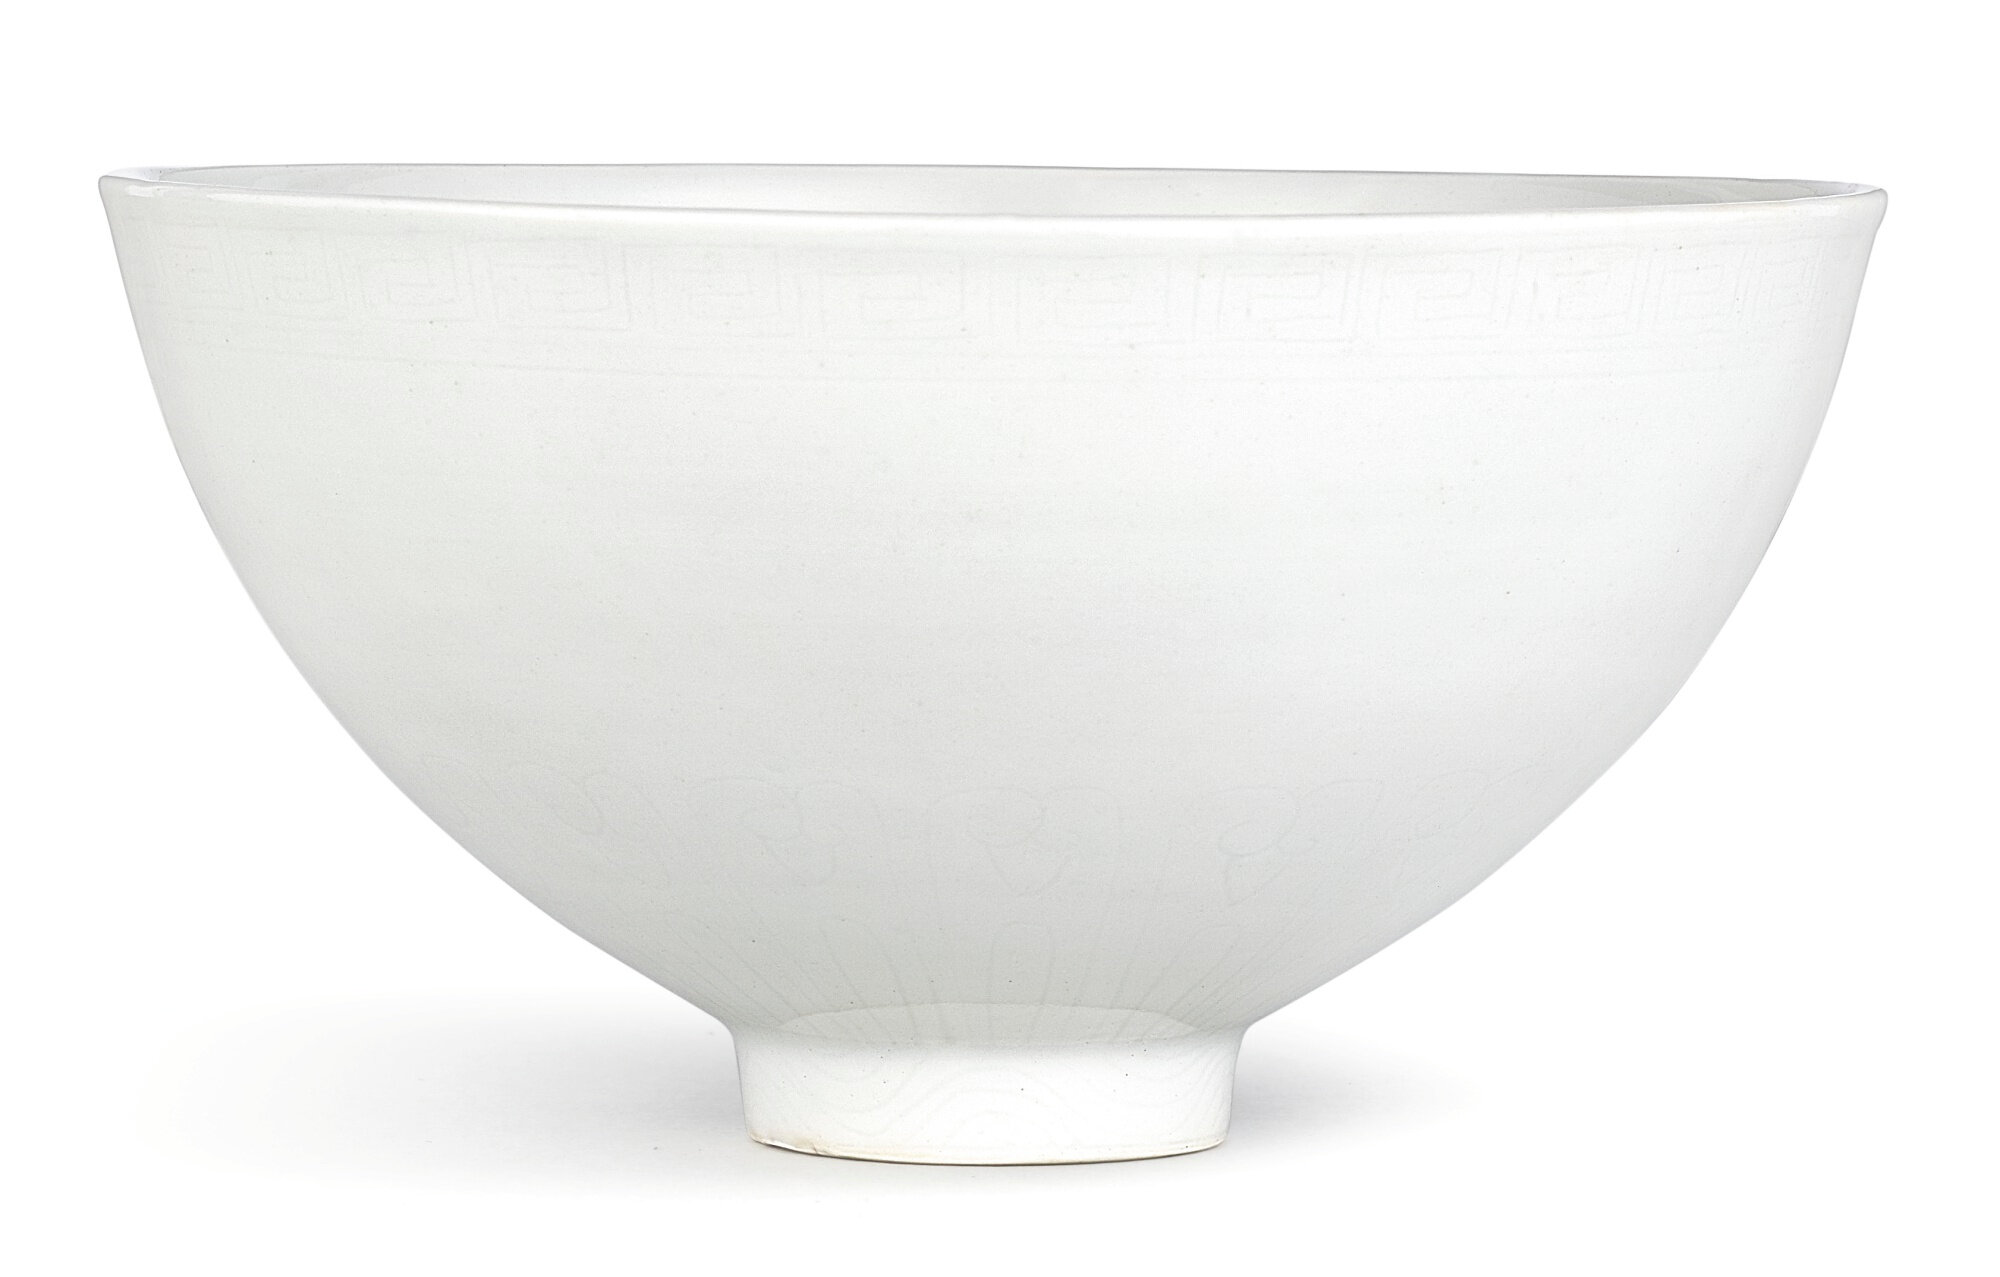 A rare incised and anhua-decorated 'sweet-white' glazed lianzi bowl, Ming dynasty, Yongle period (1403-1425)